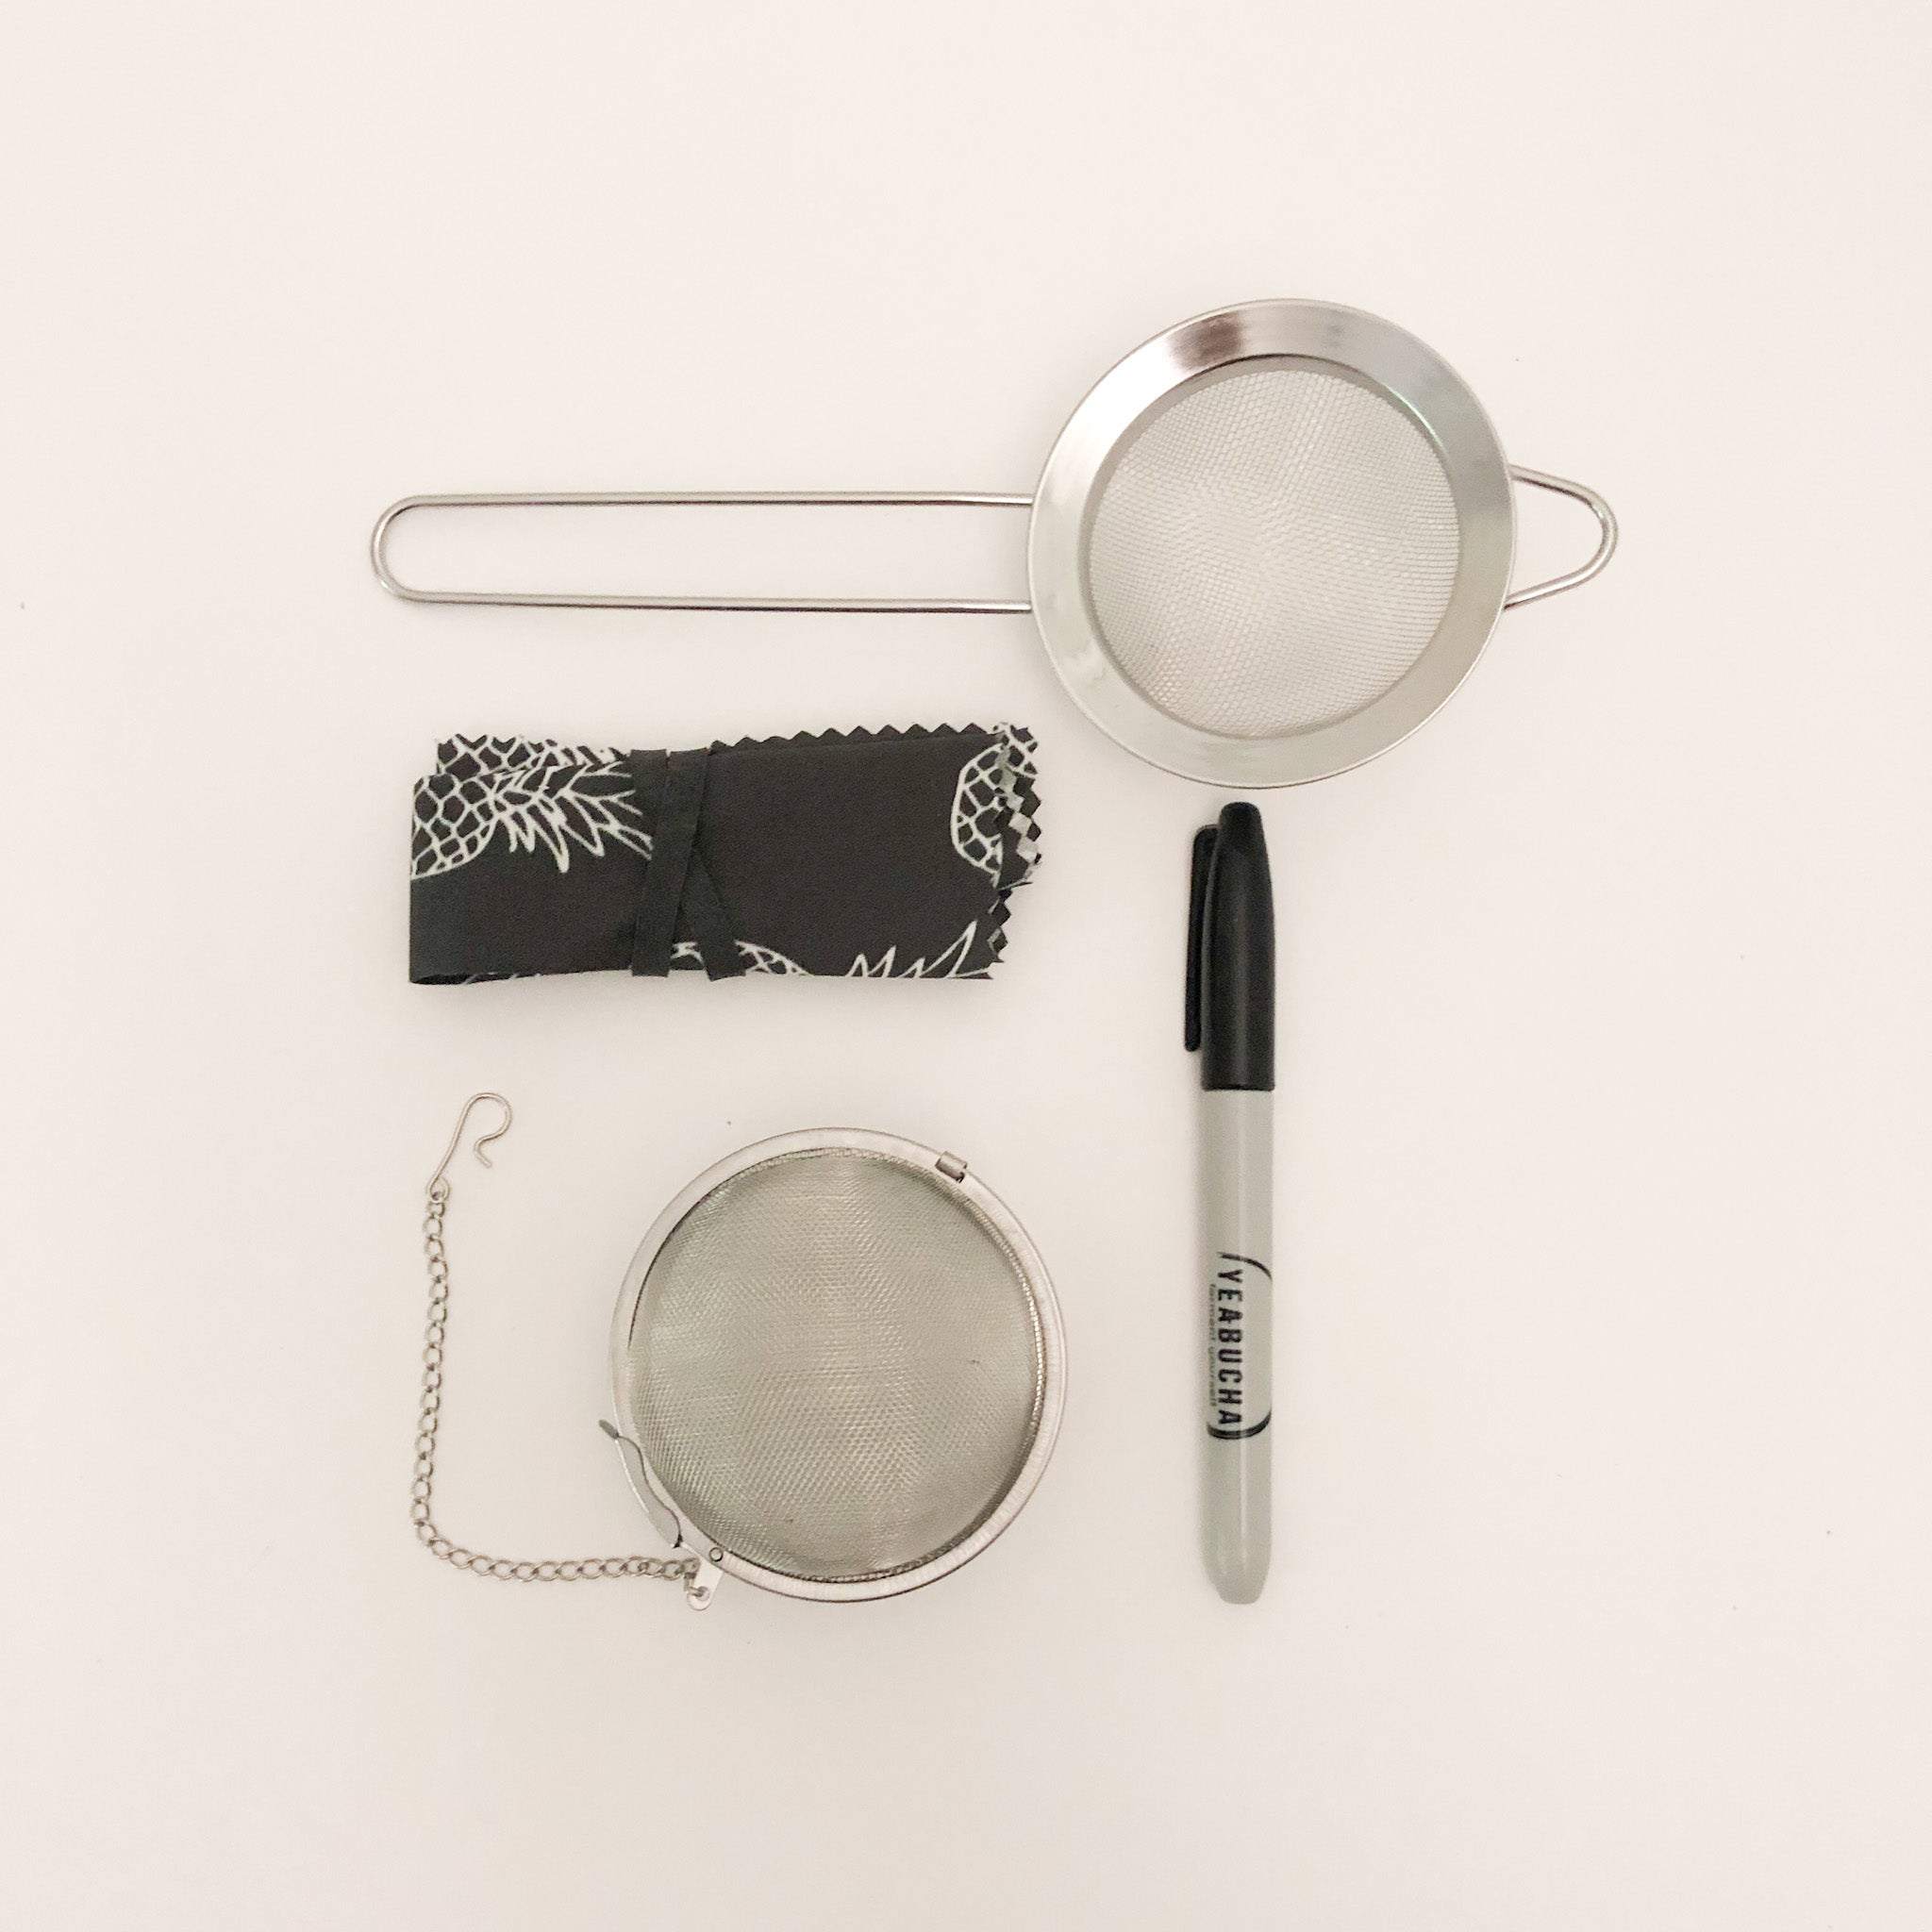 Home Brewing Kombucha accessory kit: small strainer, cloth cover, sharpie, stainless steel tea ball